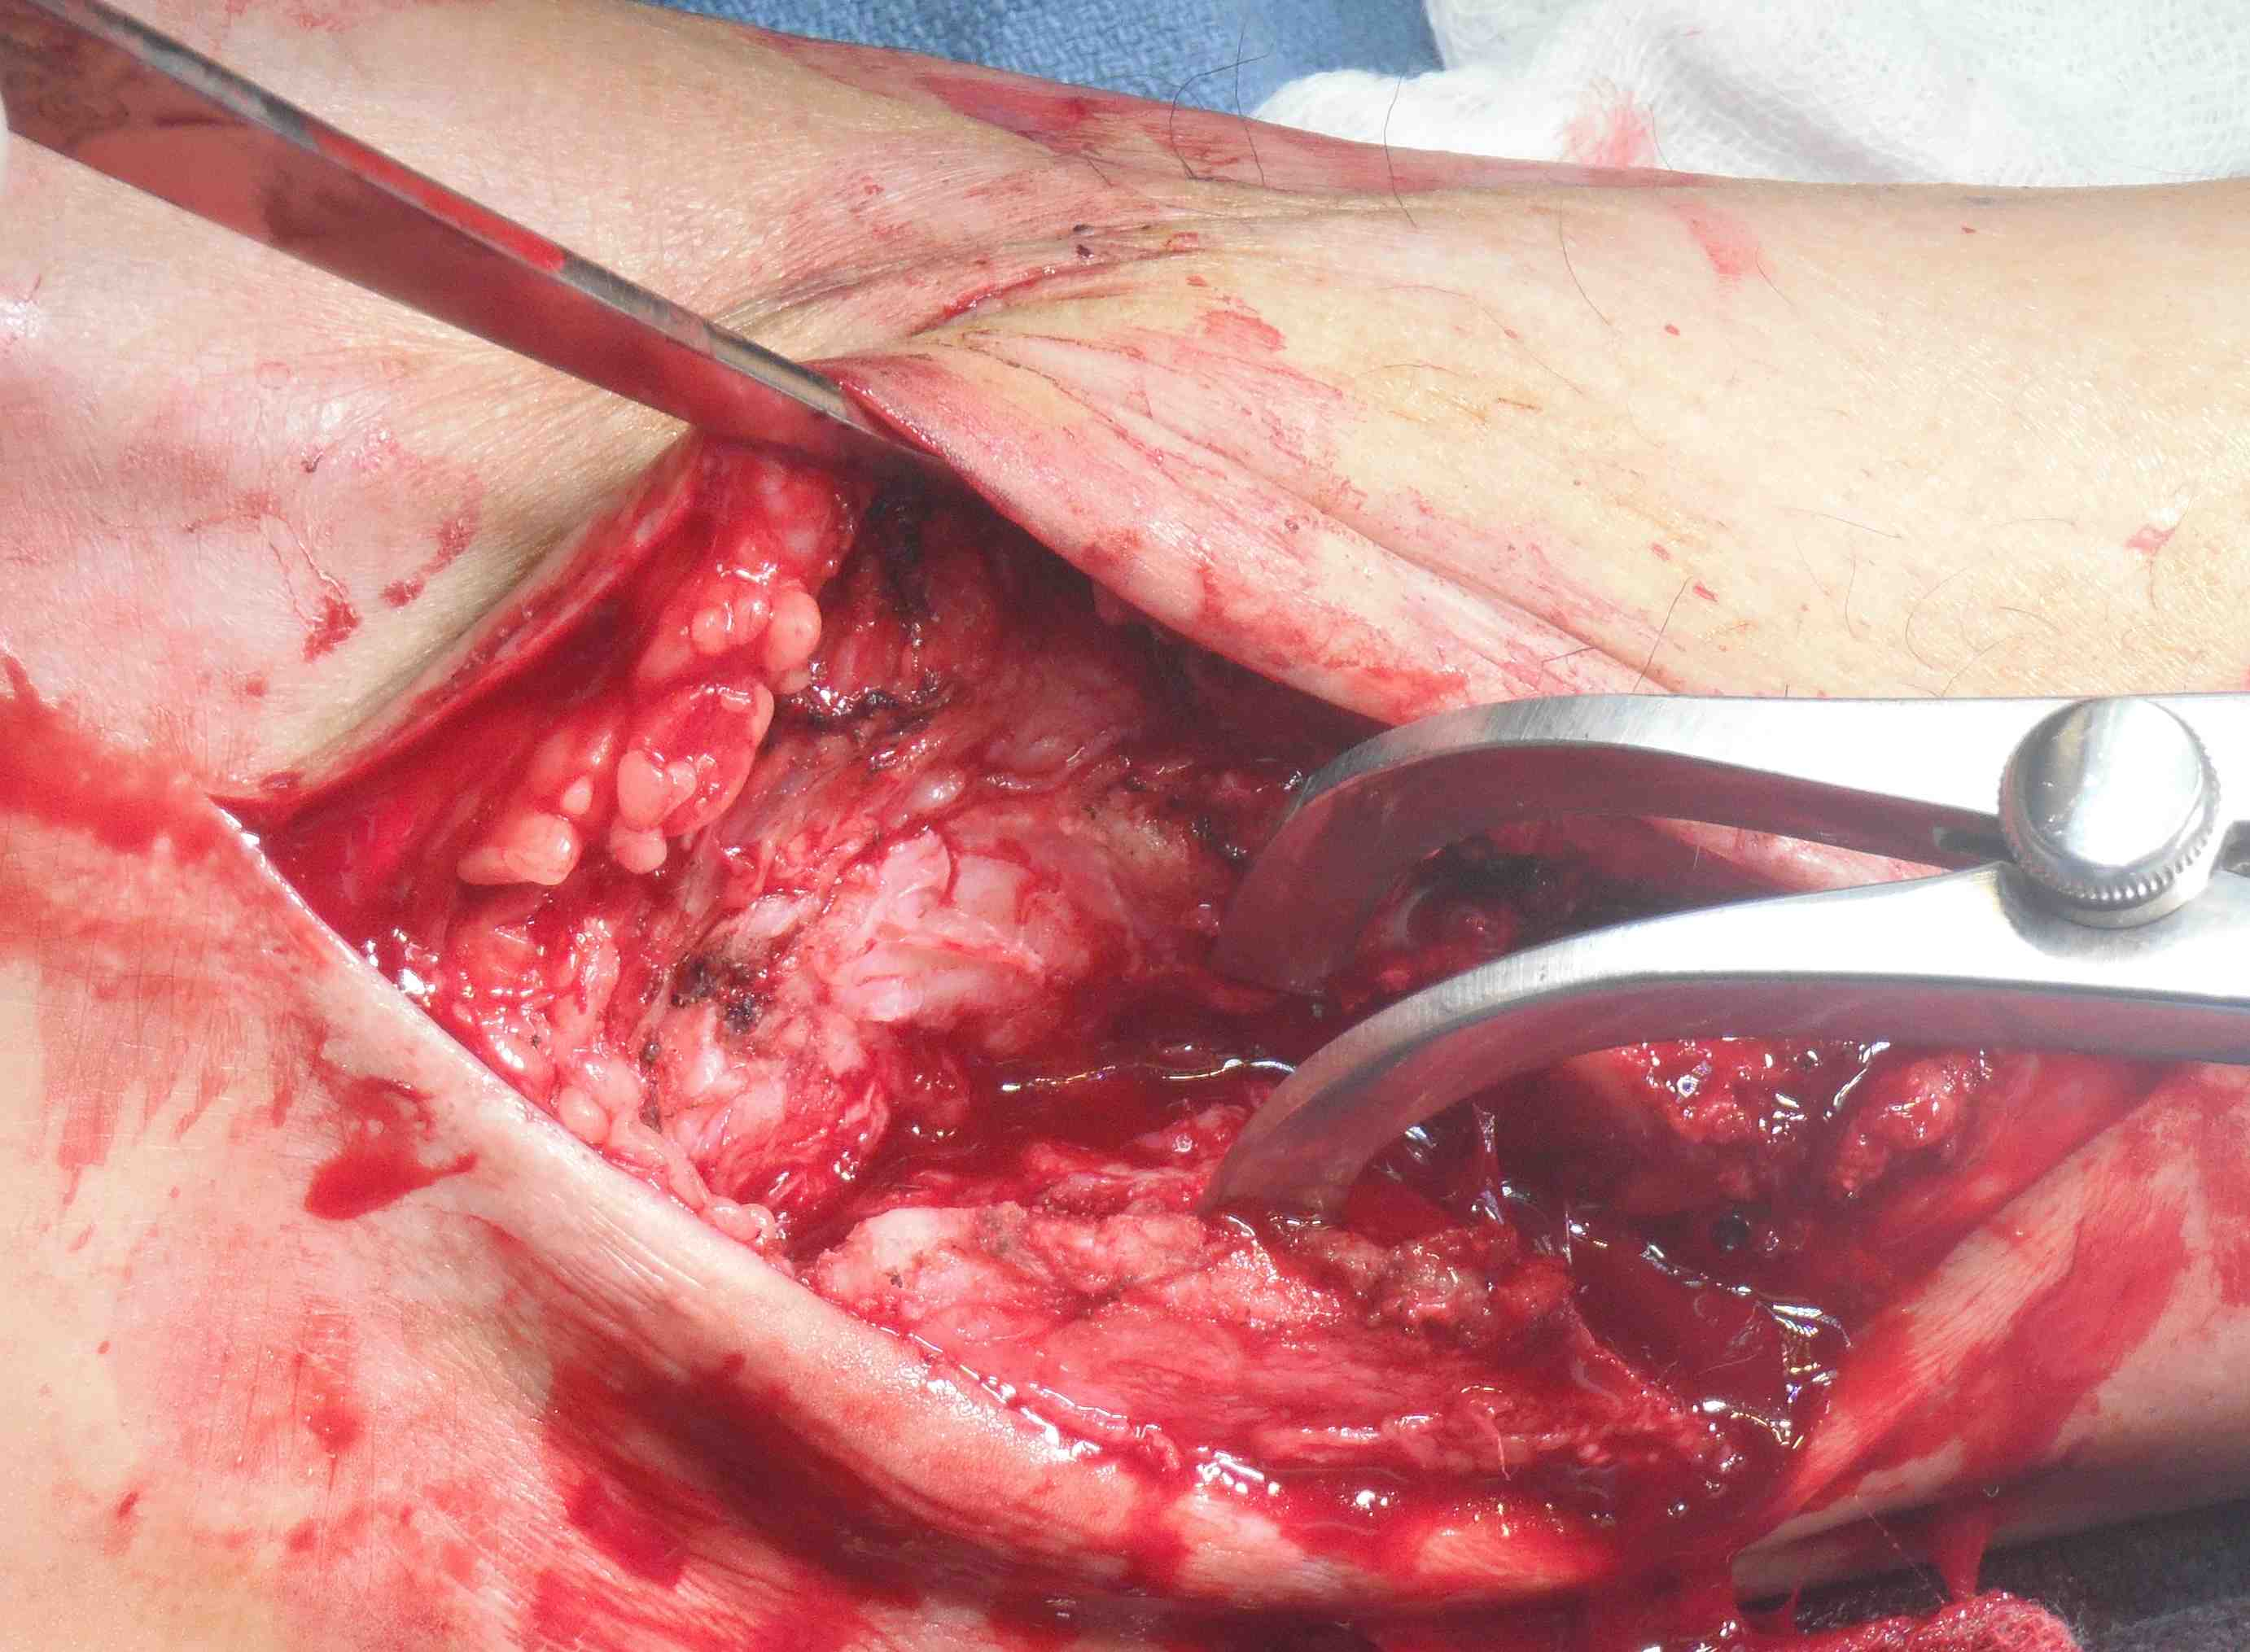 Fibula Osteotomy and Reflected Posteriorly